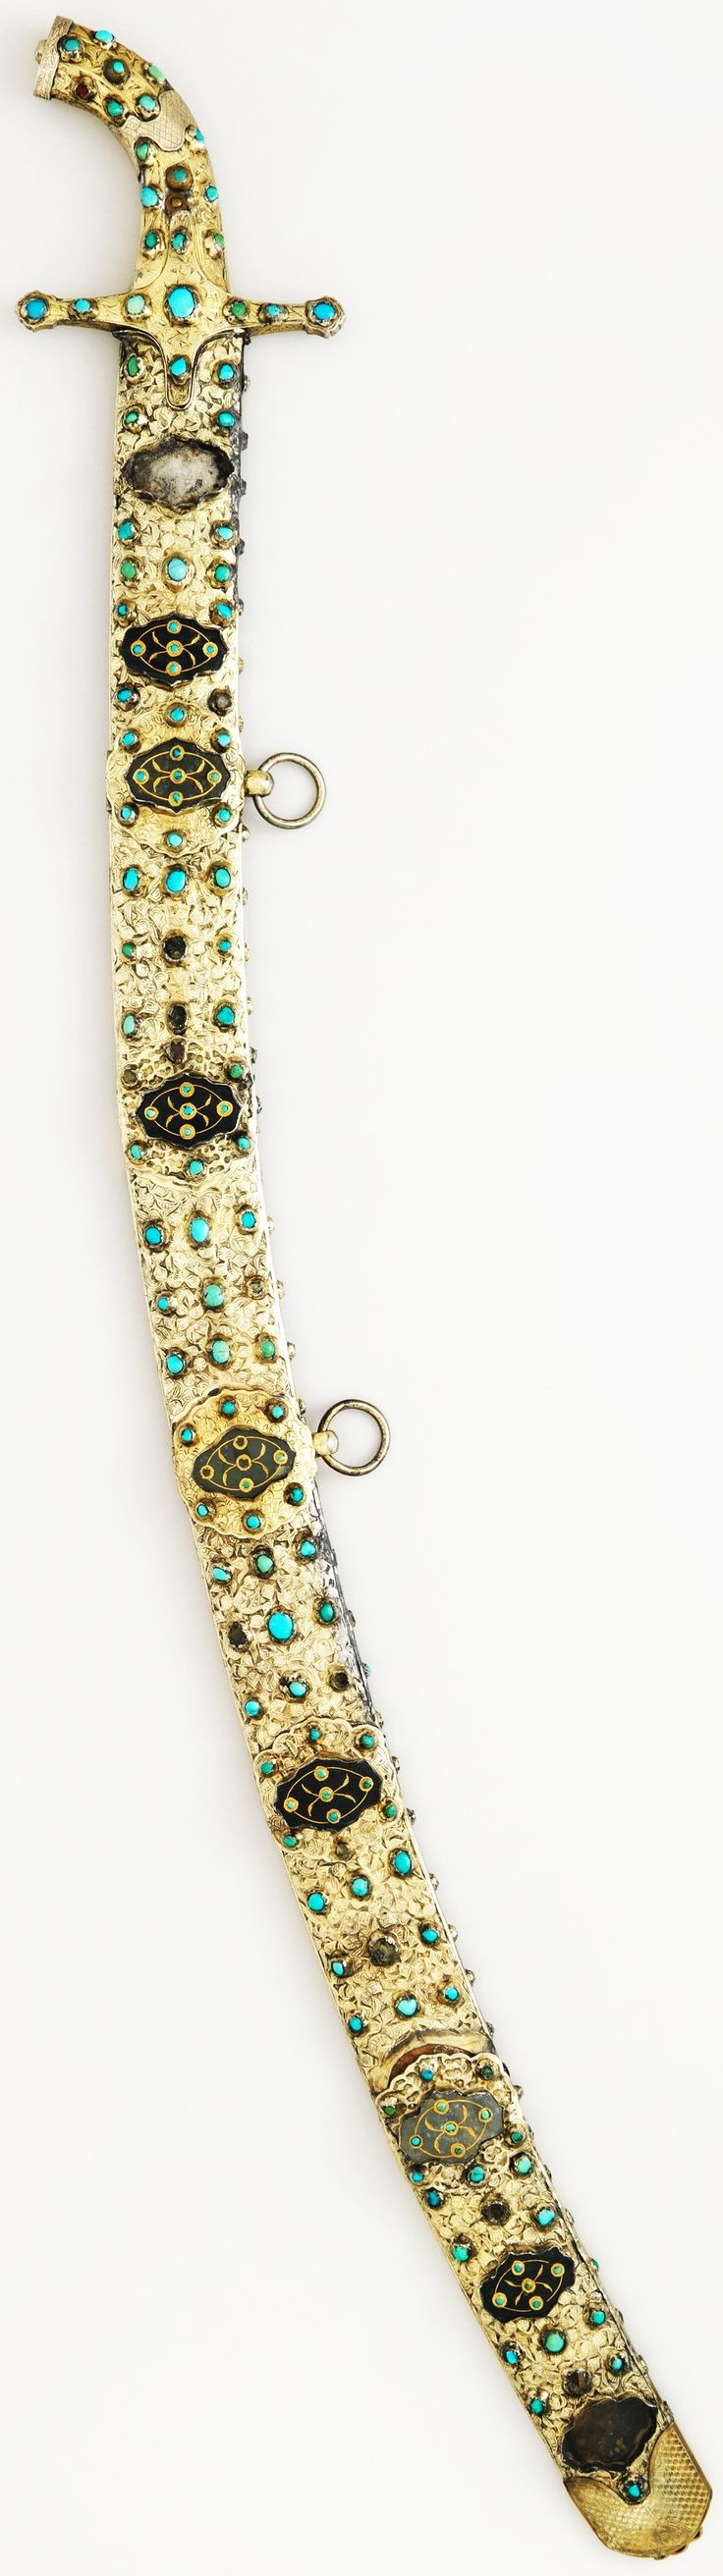 Ottoman karabala style scimitar, early 17th c, steel, brass, silver, gold, jade, turquoise, L., 42 1/16 in. (106.83 cm); sword L., 40 1/8 in. (101.9 cm); blade L., 35 in. (88.9 cm); Wt., 4 lb. 4 oz. (1928 g), Met Museum. This is a typical Ottoman presentation saber of the 17th c. Many similar weapons, as well as shields and complete horse trappings similiarly mounted in silver-gilt and set with jade plaques and turquoise, were captured after the unsuccessful Turkish seige of Vienna in 1683.